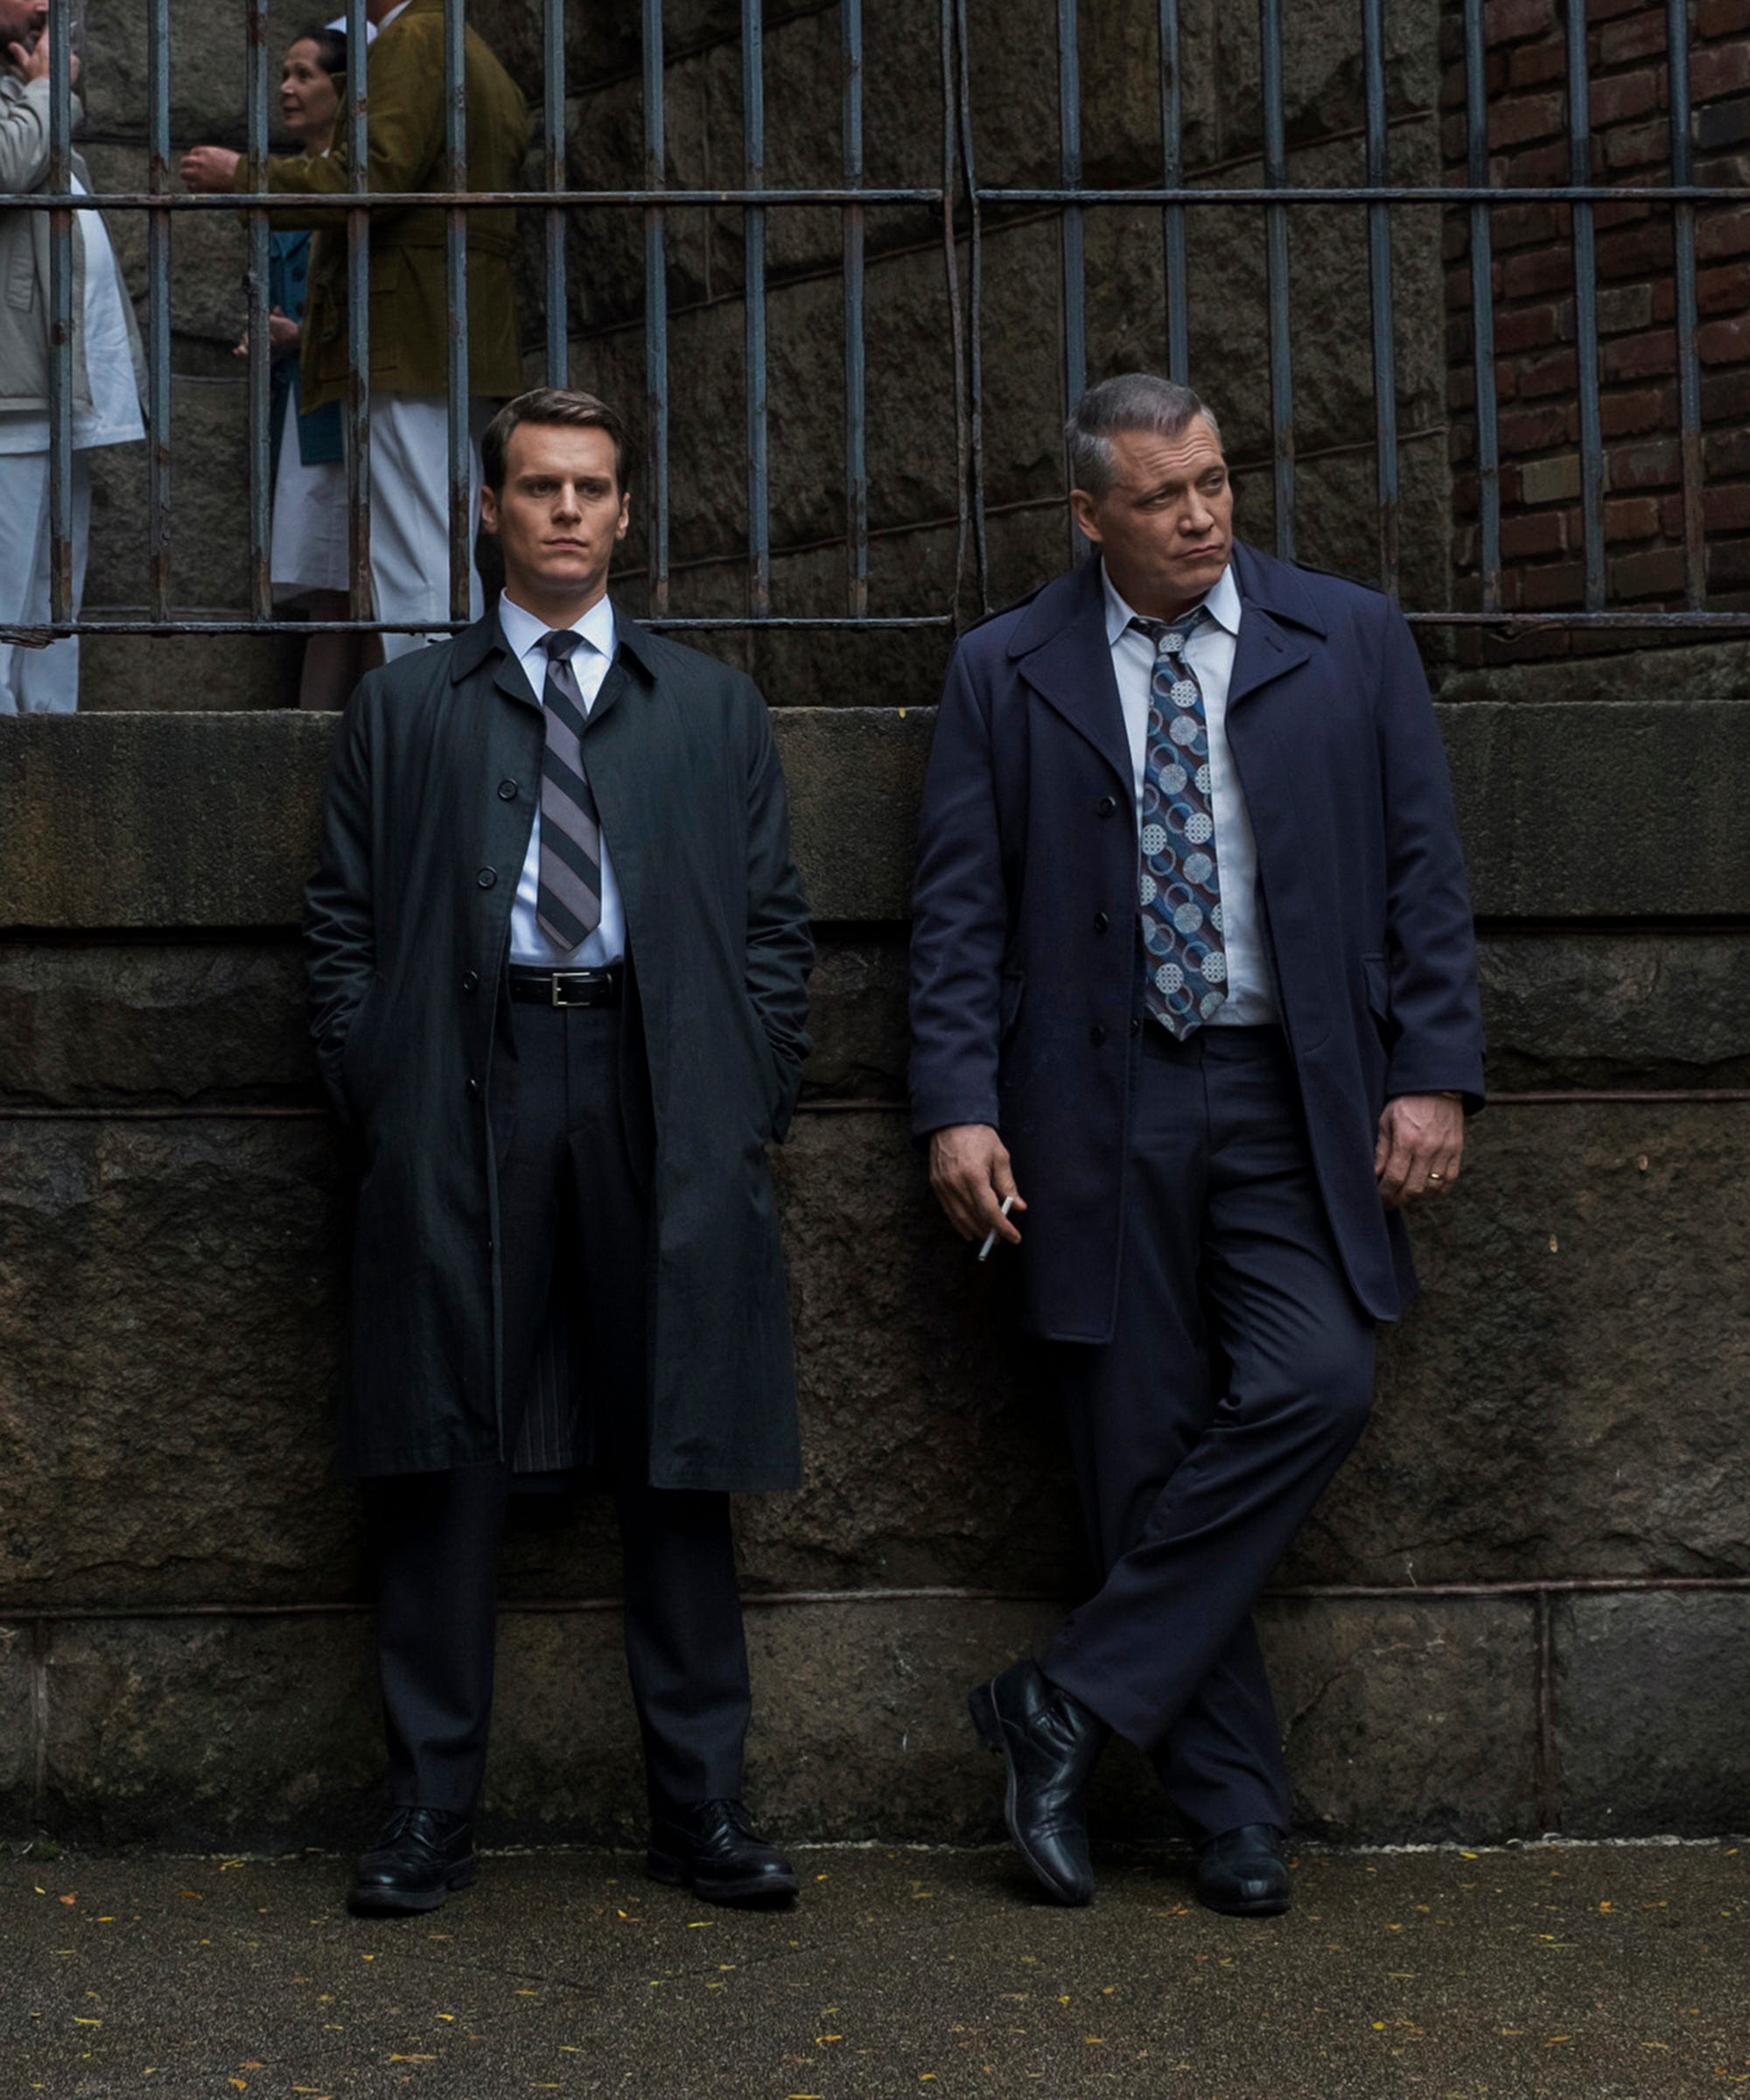 Actors In Netflix Mindhunter Season 2 - New Characters